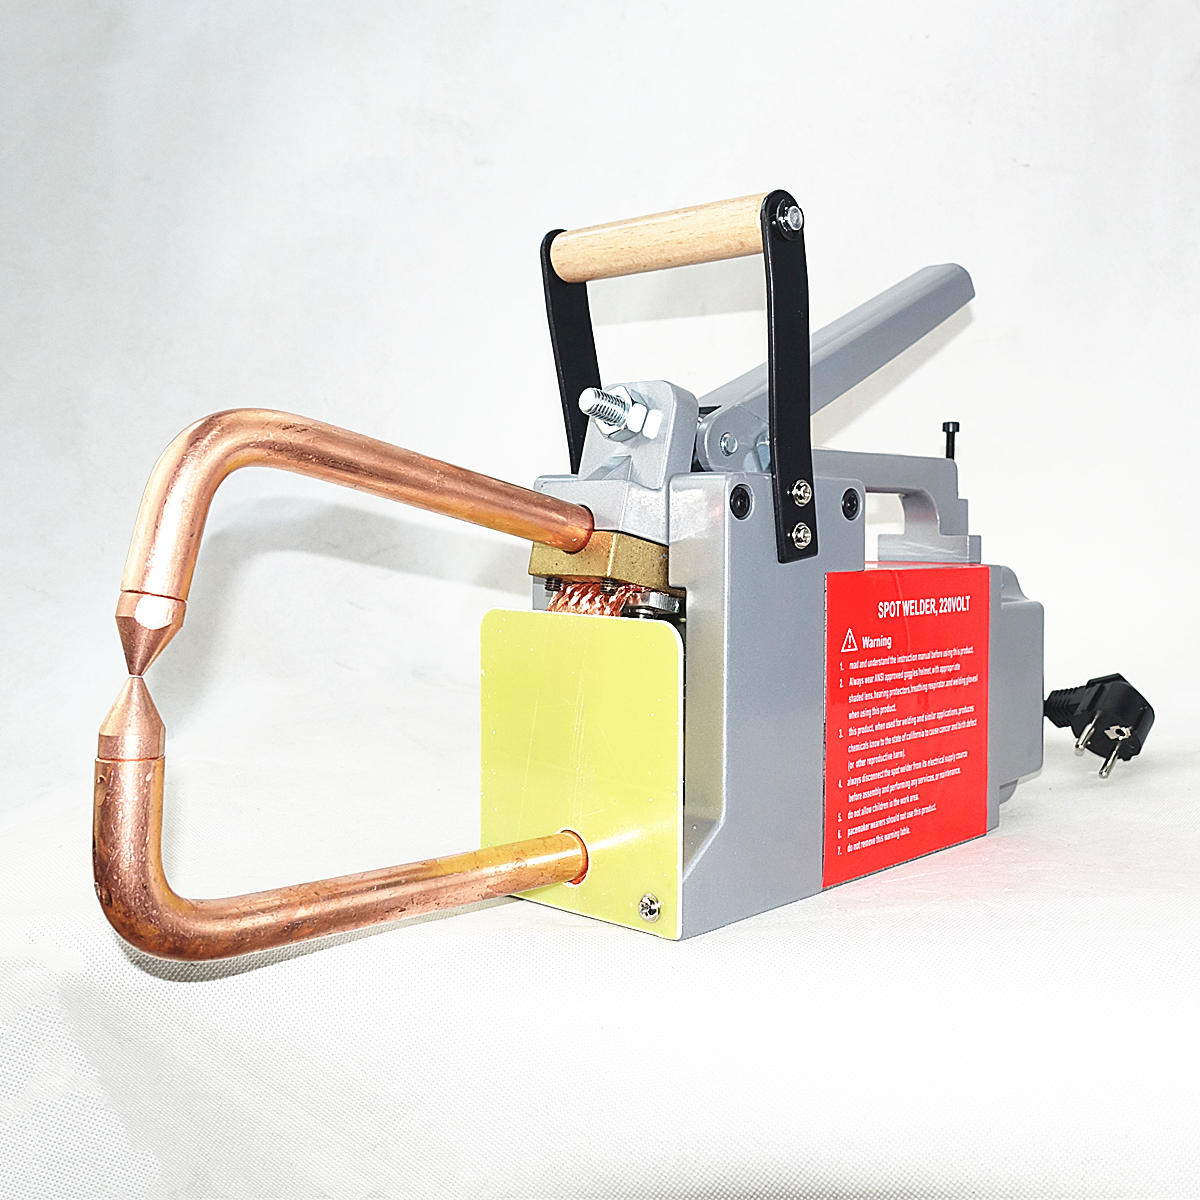 Resistance Spot Welding Machine 230V/110V Welding Thickness 1.5+1.5mm Steel Plat CE Portable Spot Welder